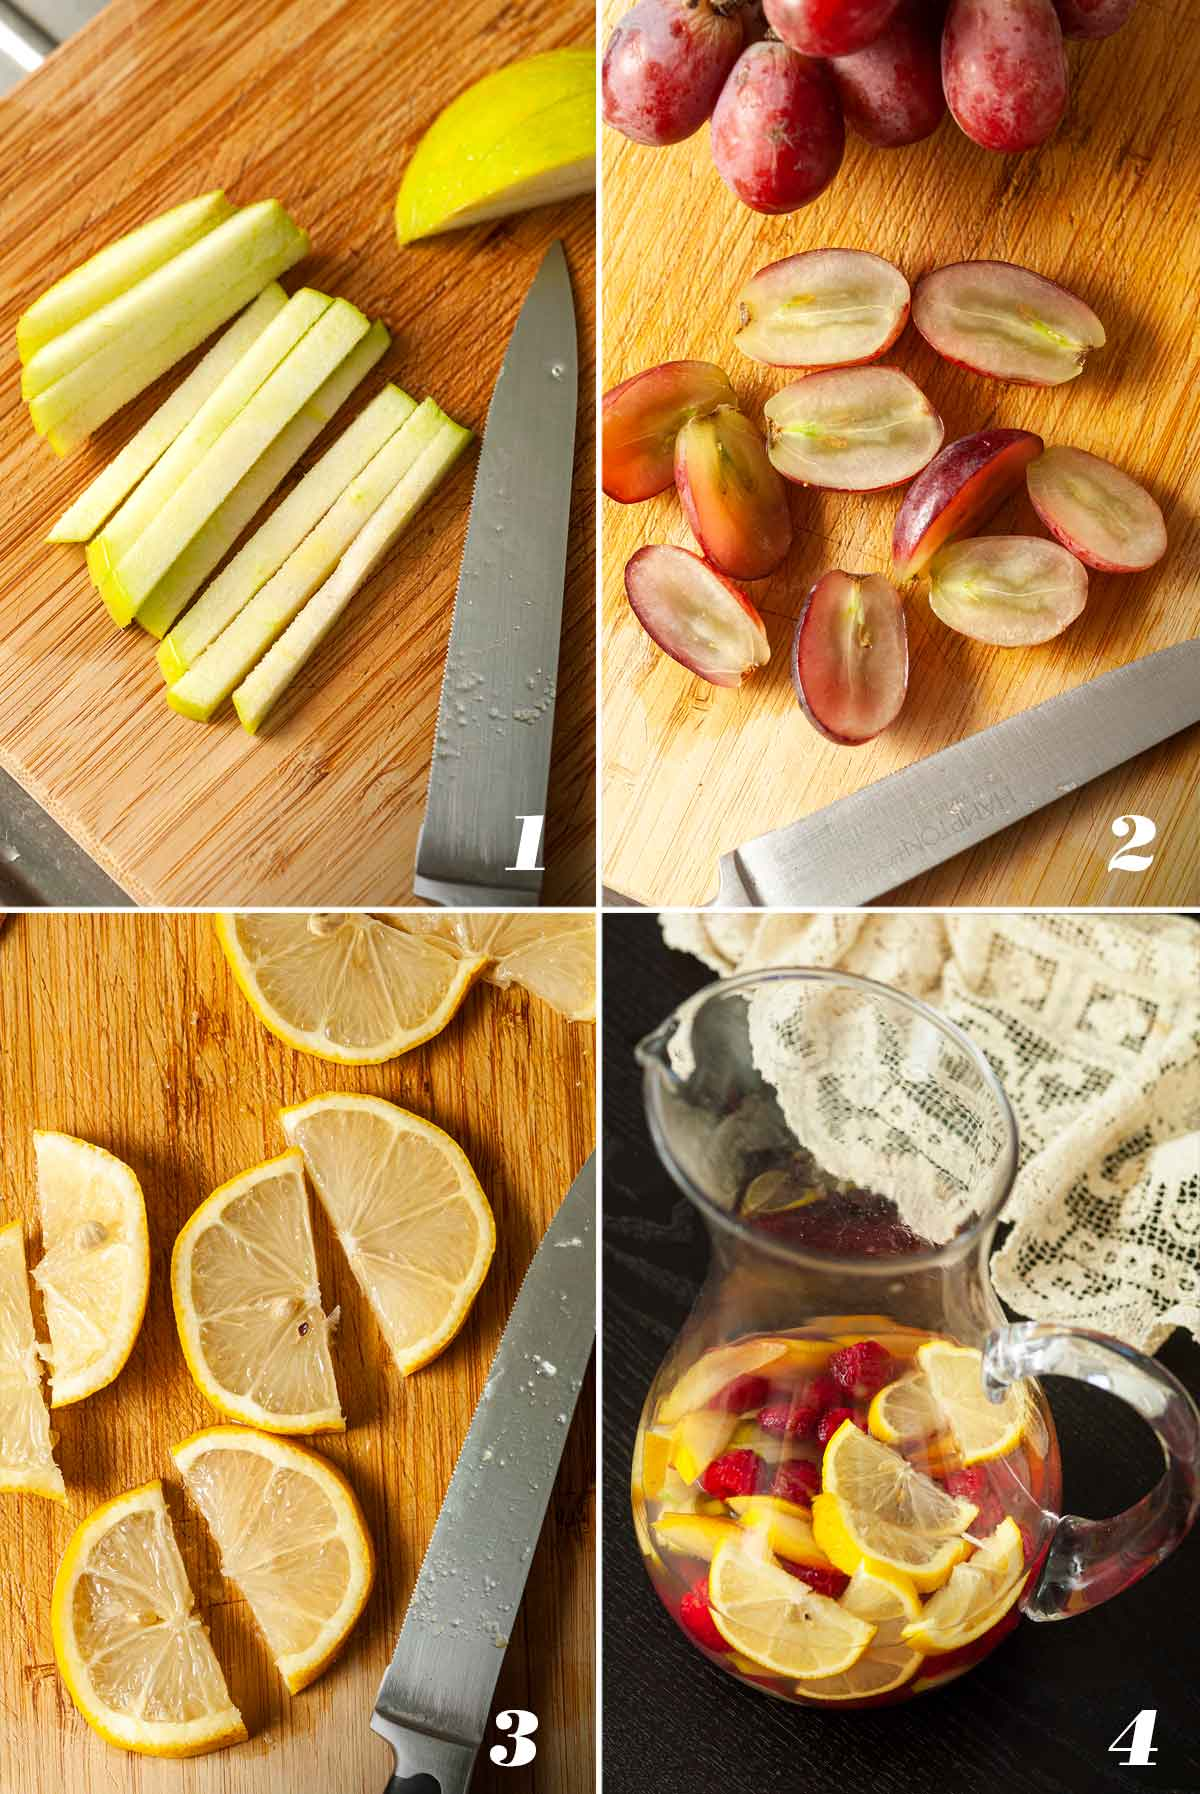 A collage of 4 images showing how to make sake sangria.